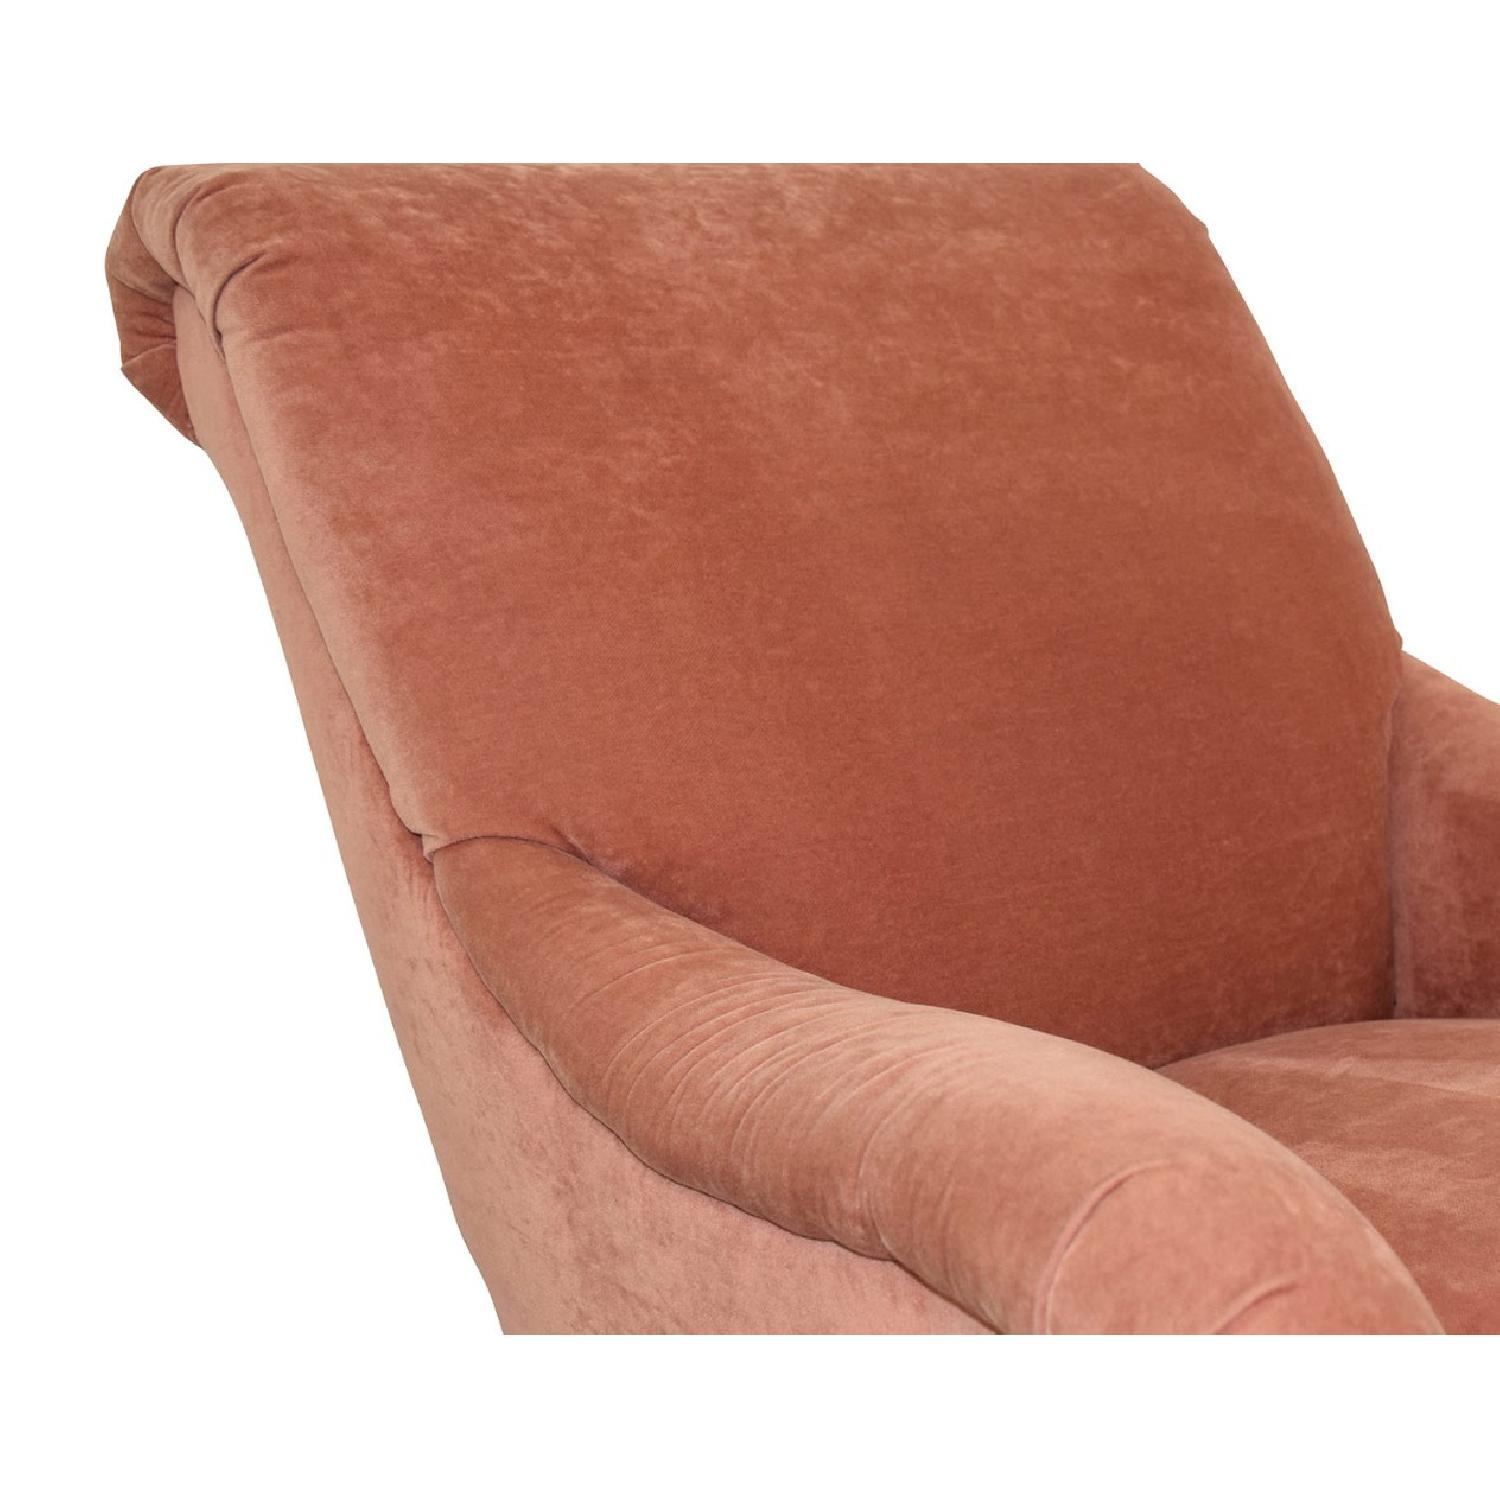 Kathy Pink Arm Chair w/ Castors - image-6